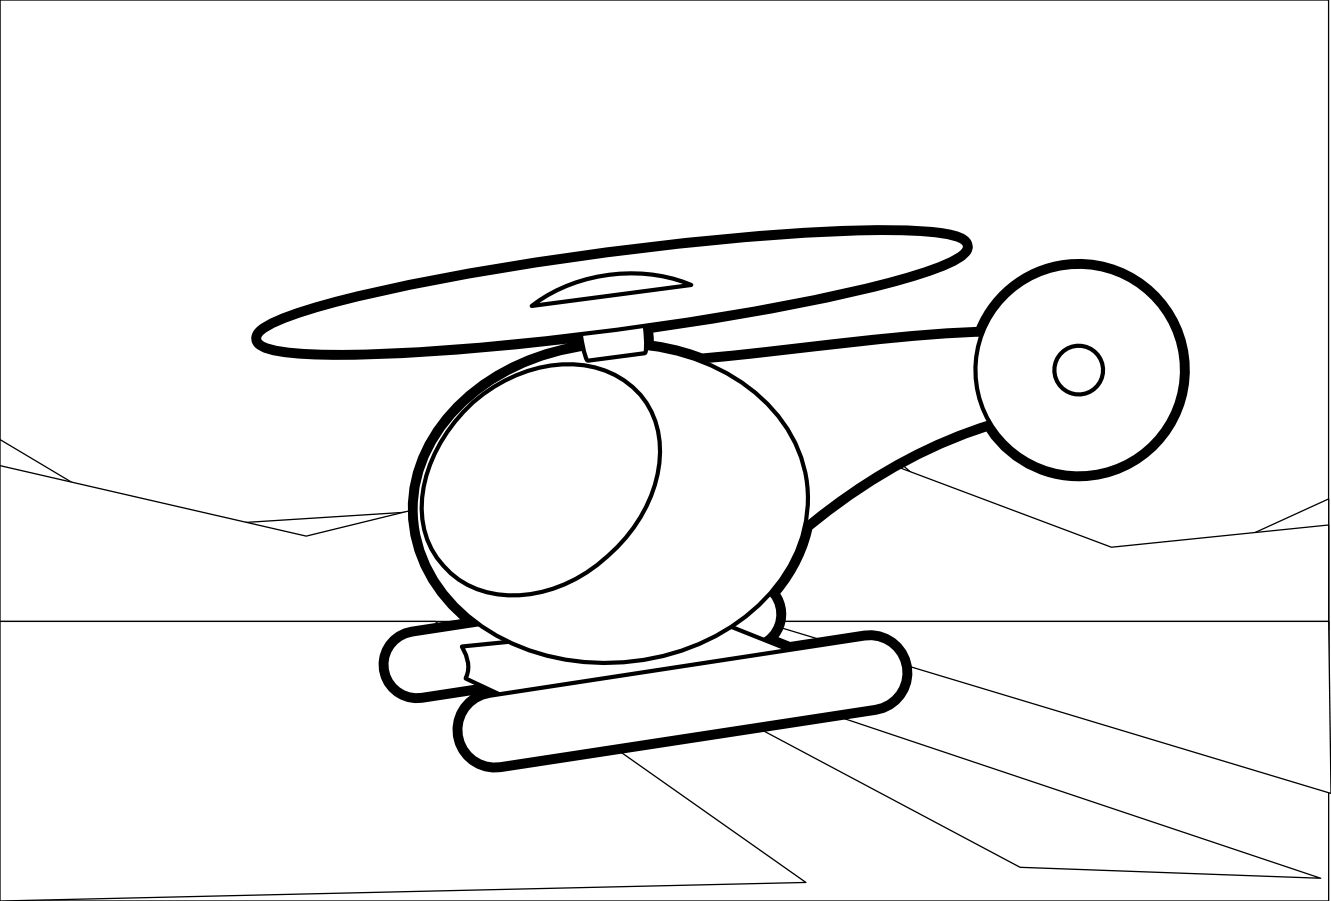 List of Coloring Page Police Helicopter Pict - Best Pictures